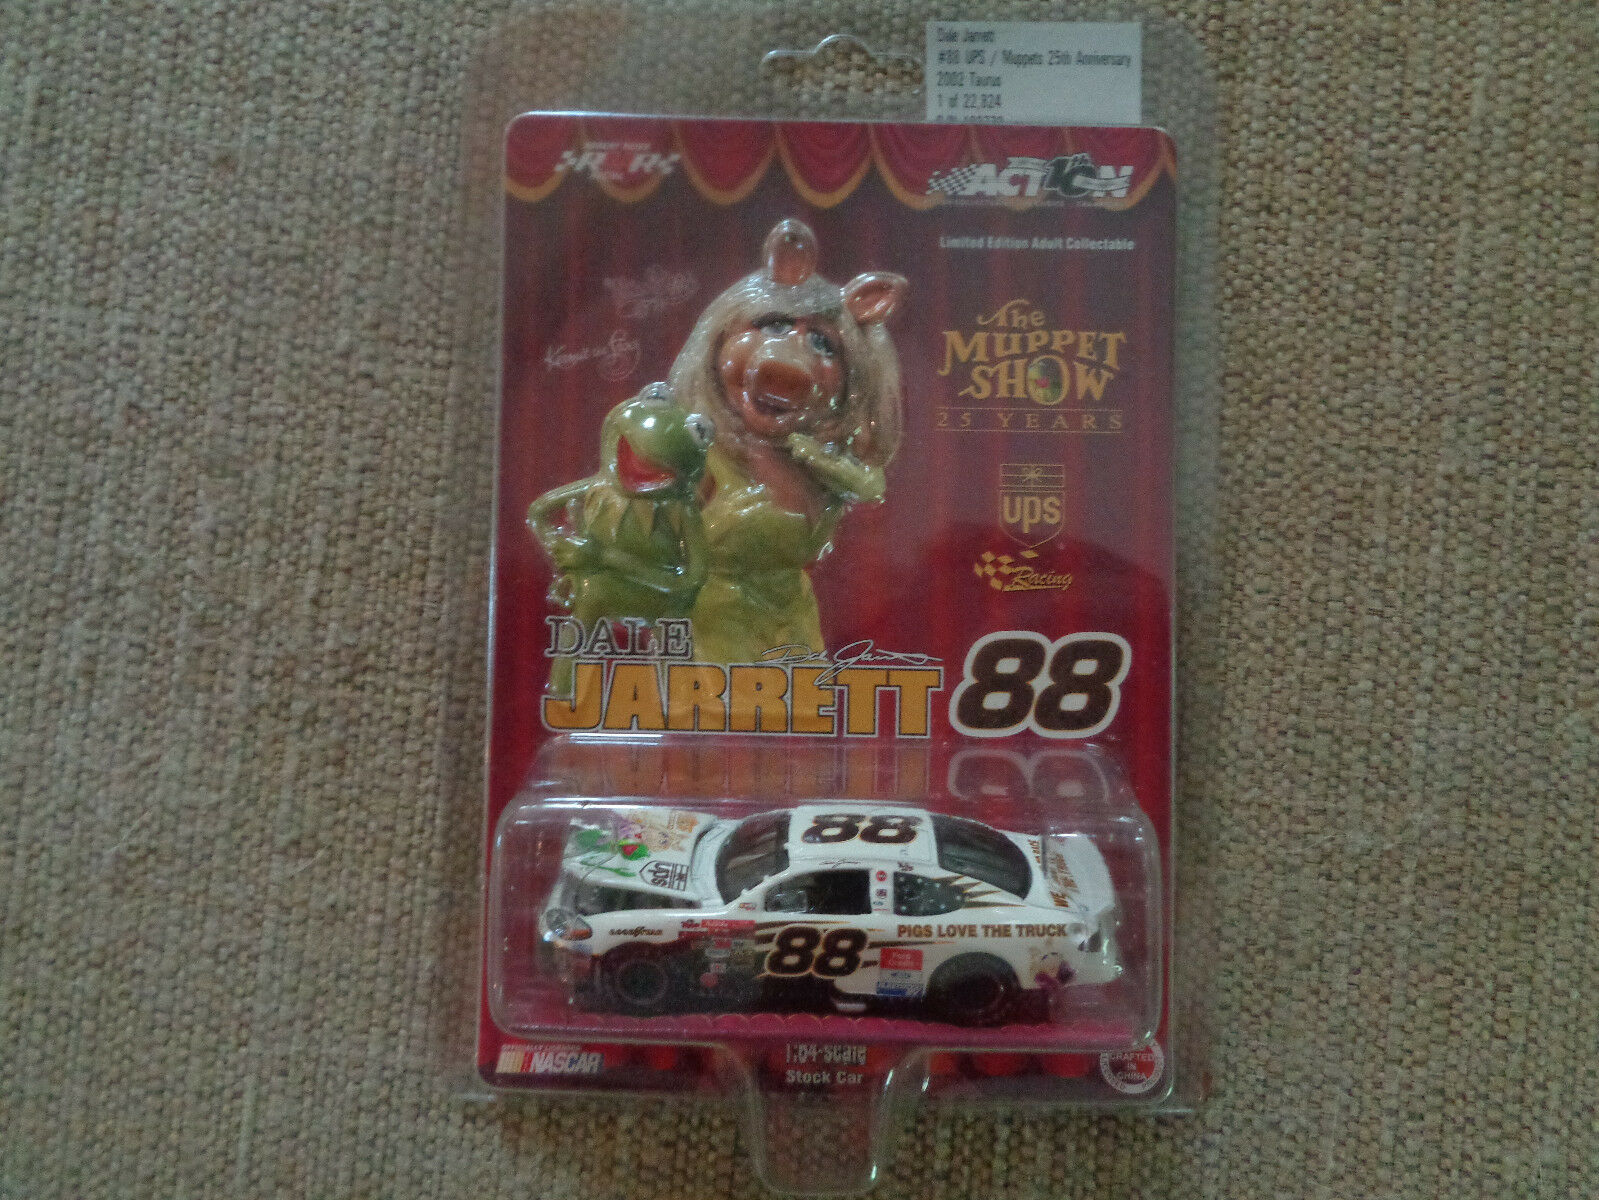 Nascar ACTION Dale Jarrett The Muppet Show 25 Years Limited Edition  1 64